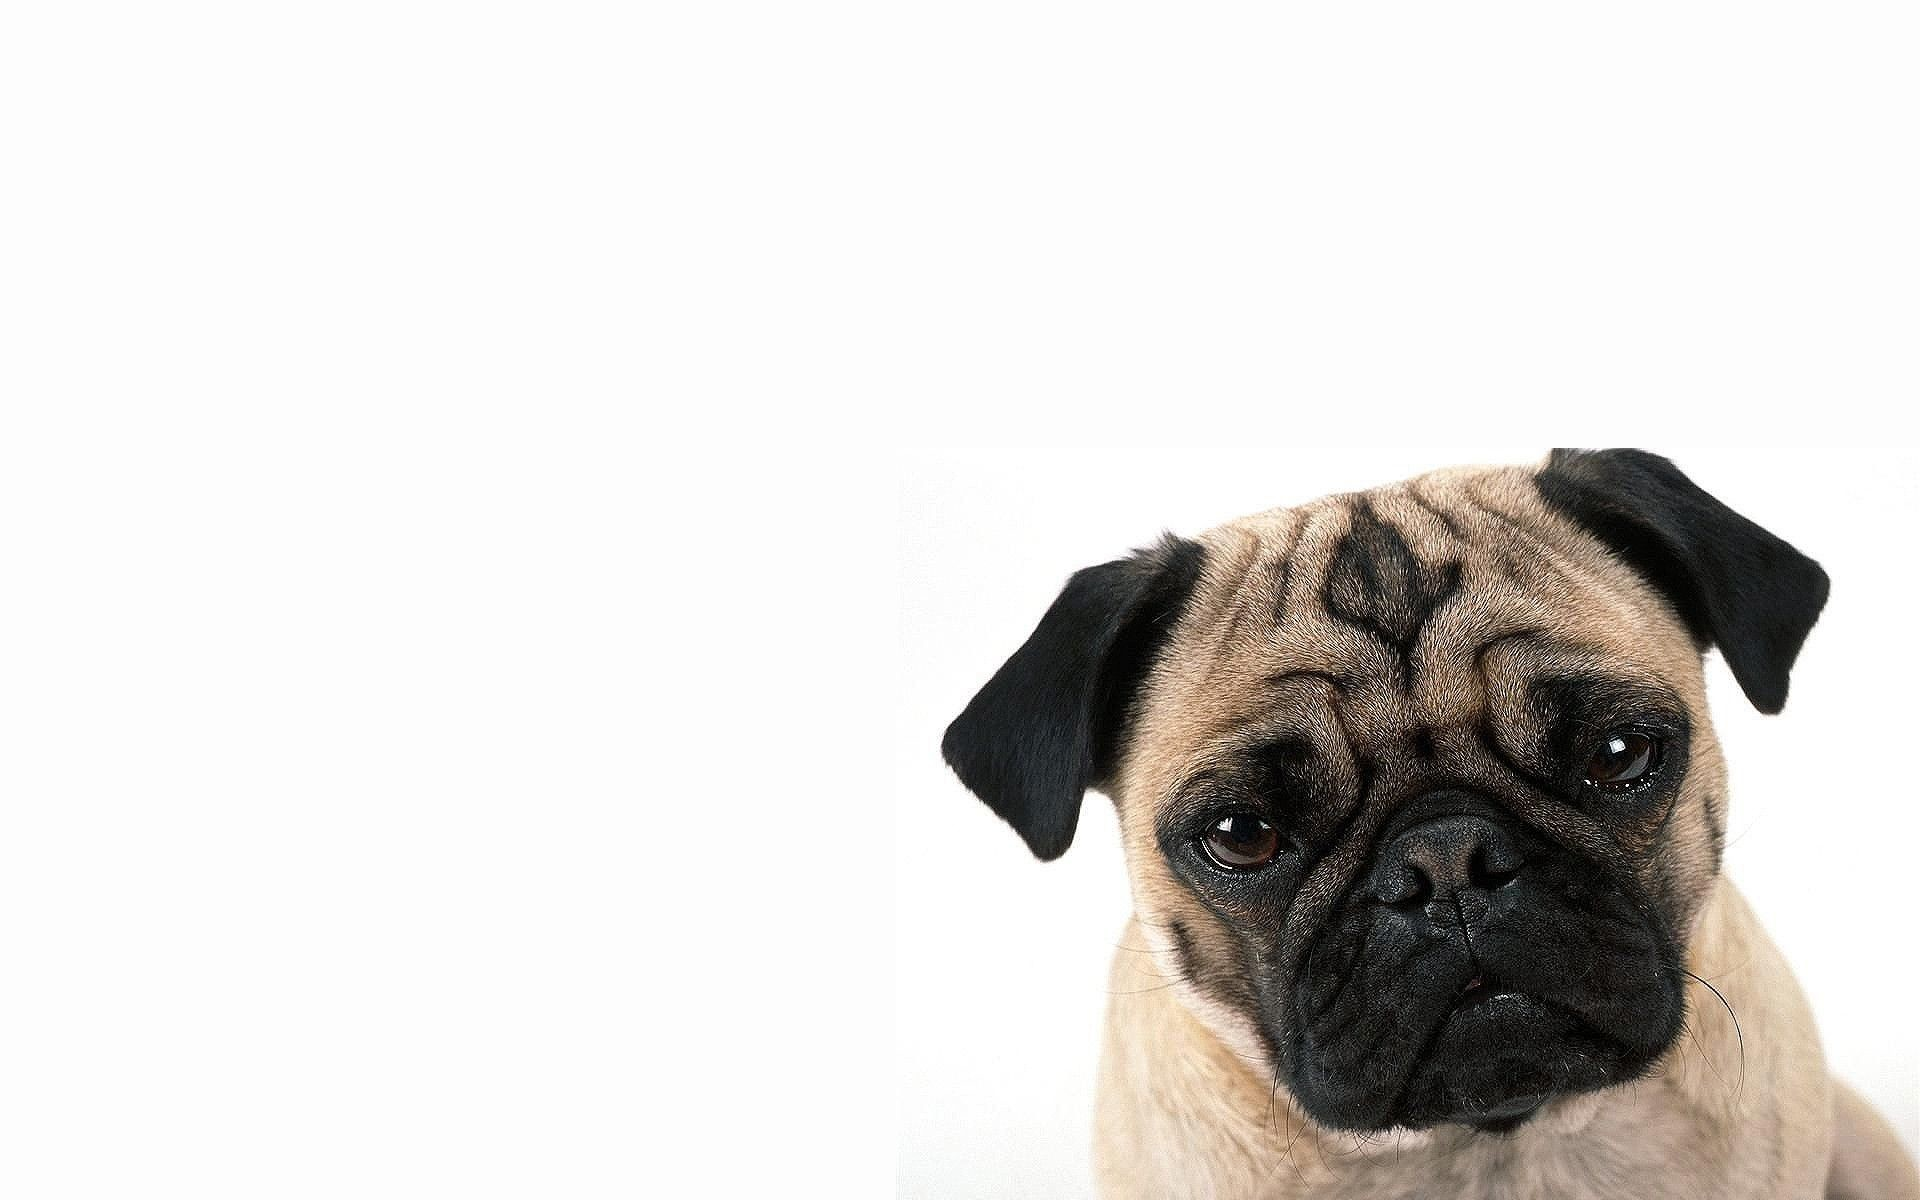 1920x1200 pug cute dog - Wallpaper